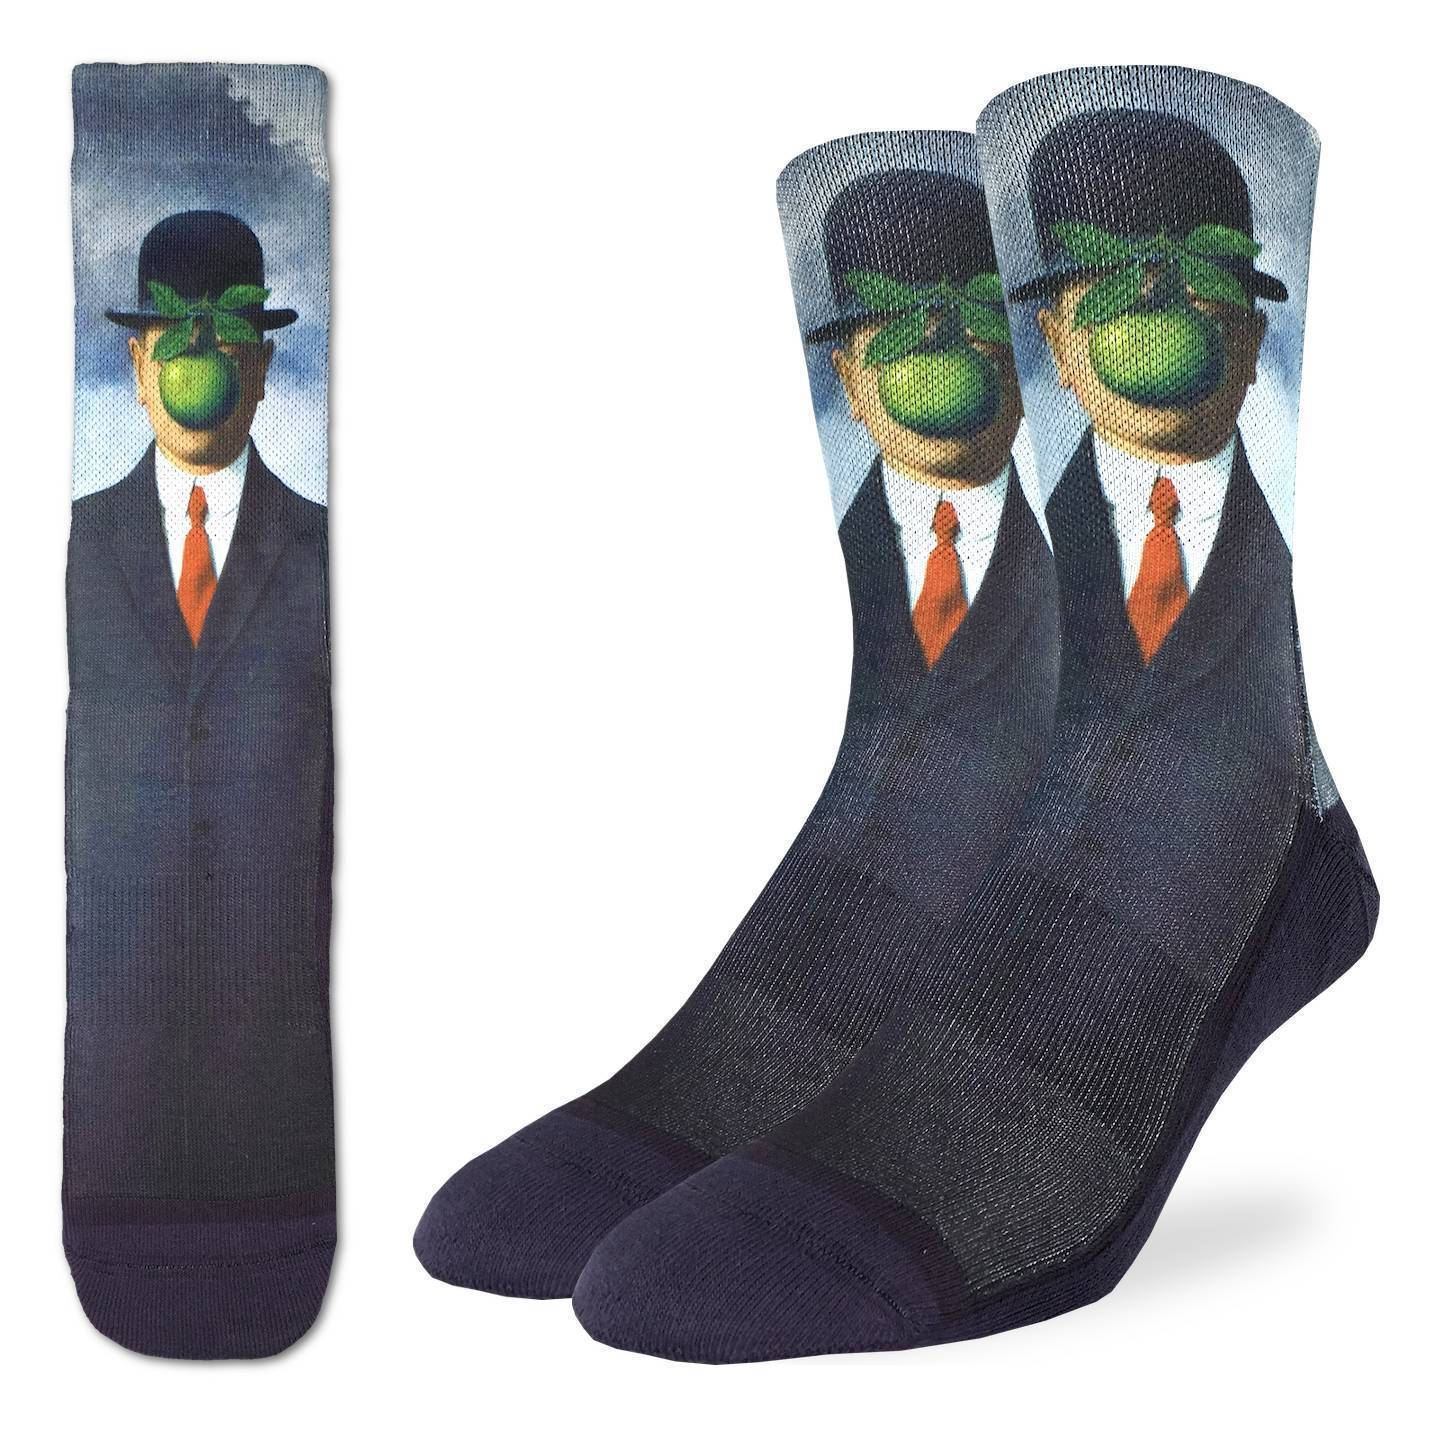 Good Luck Sock Men's The Son Of Man